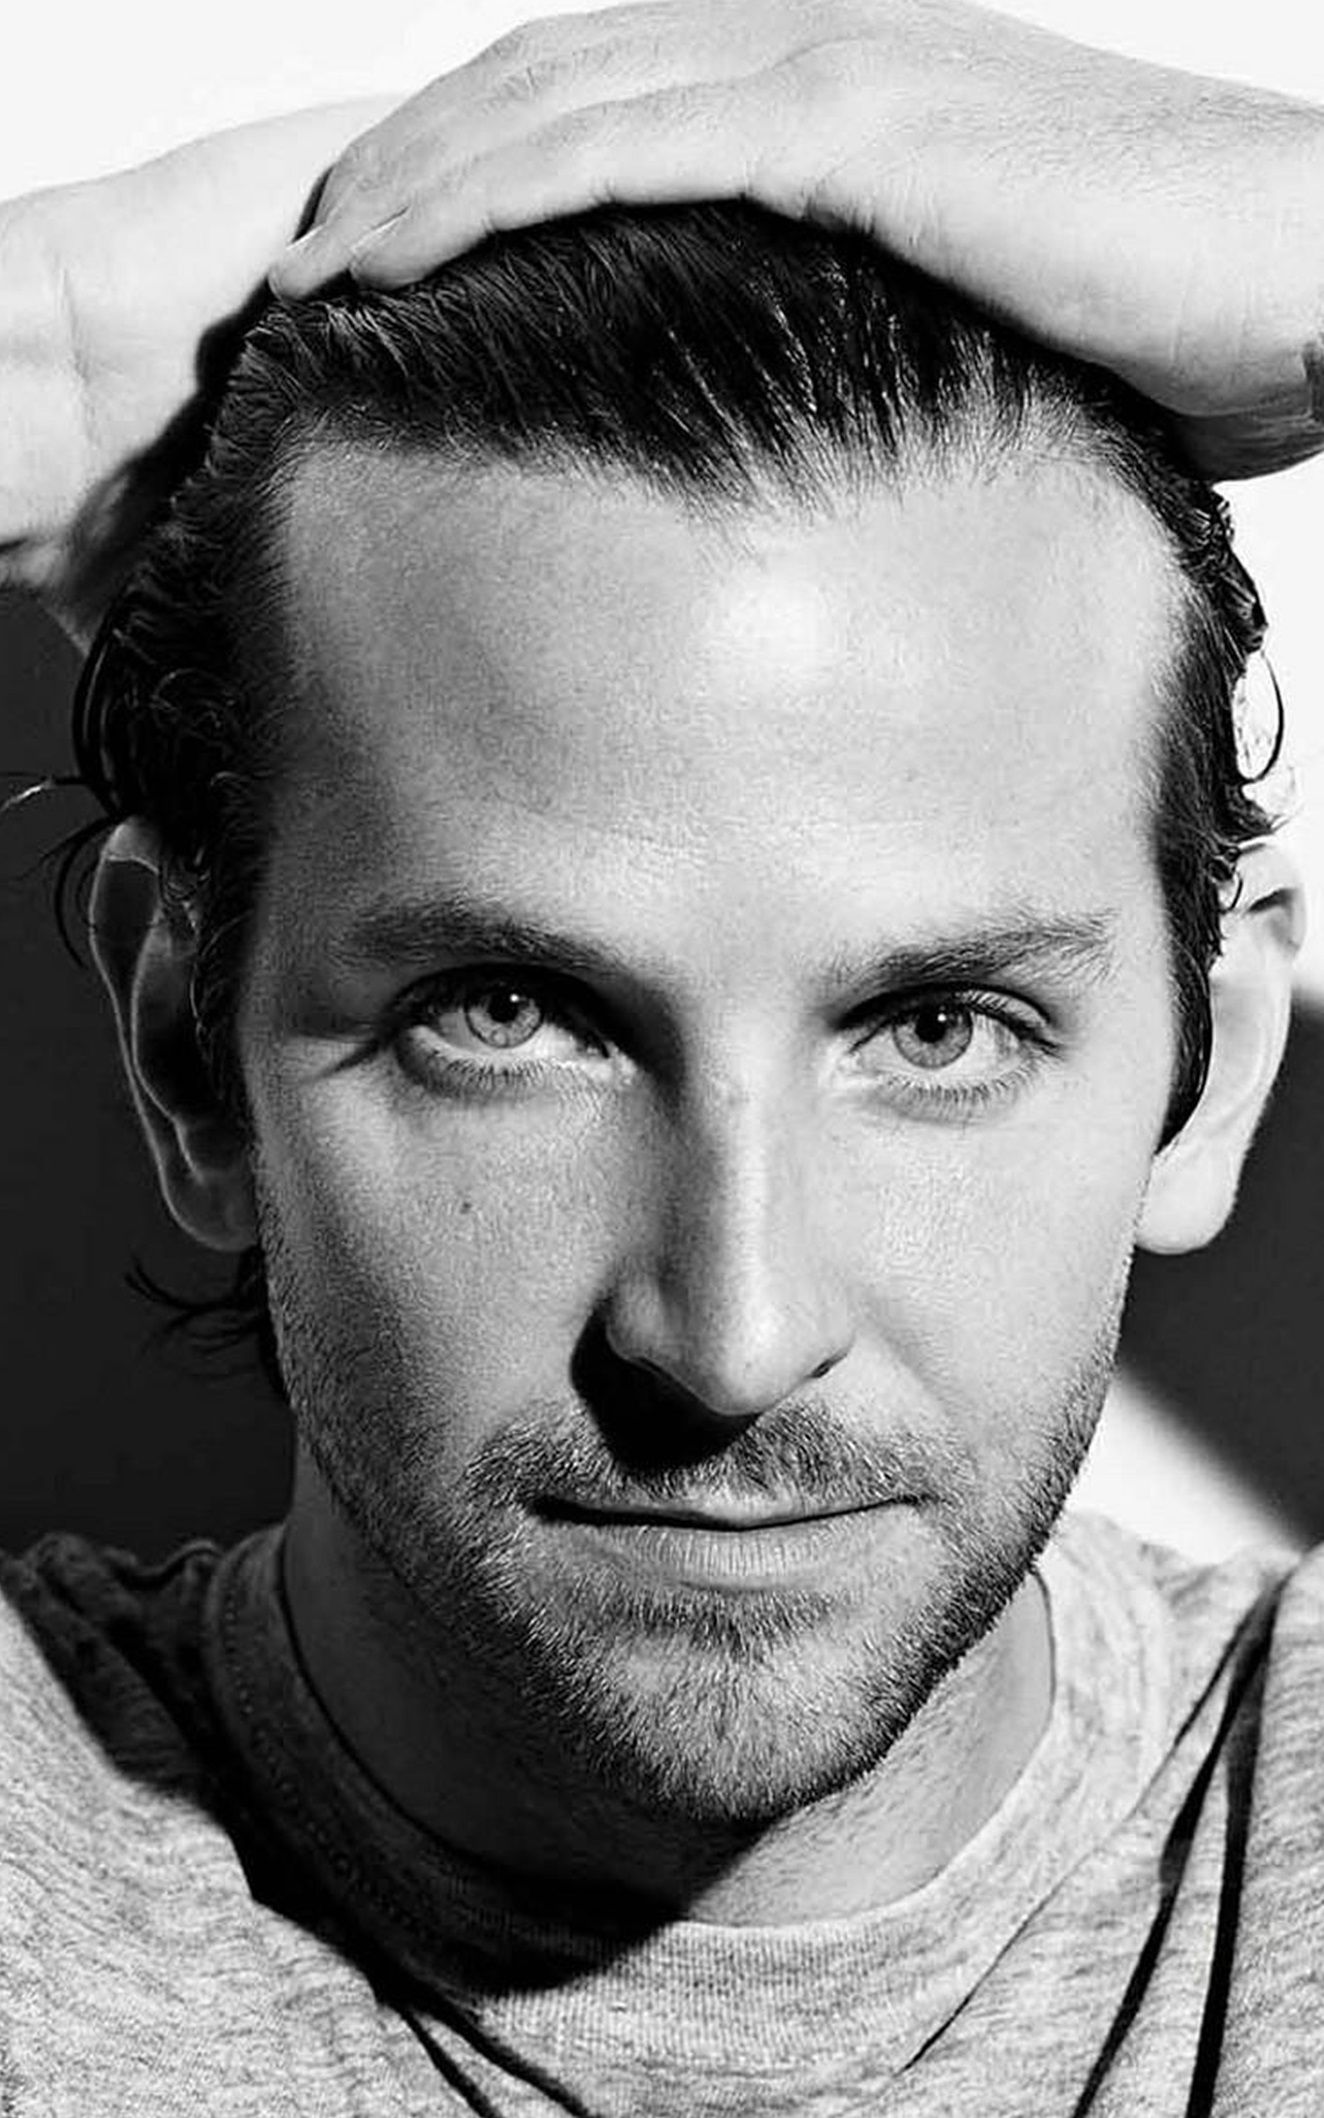 Bradley cooper even in black and white those eyes are pretty